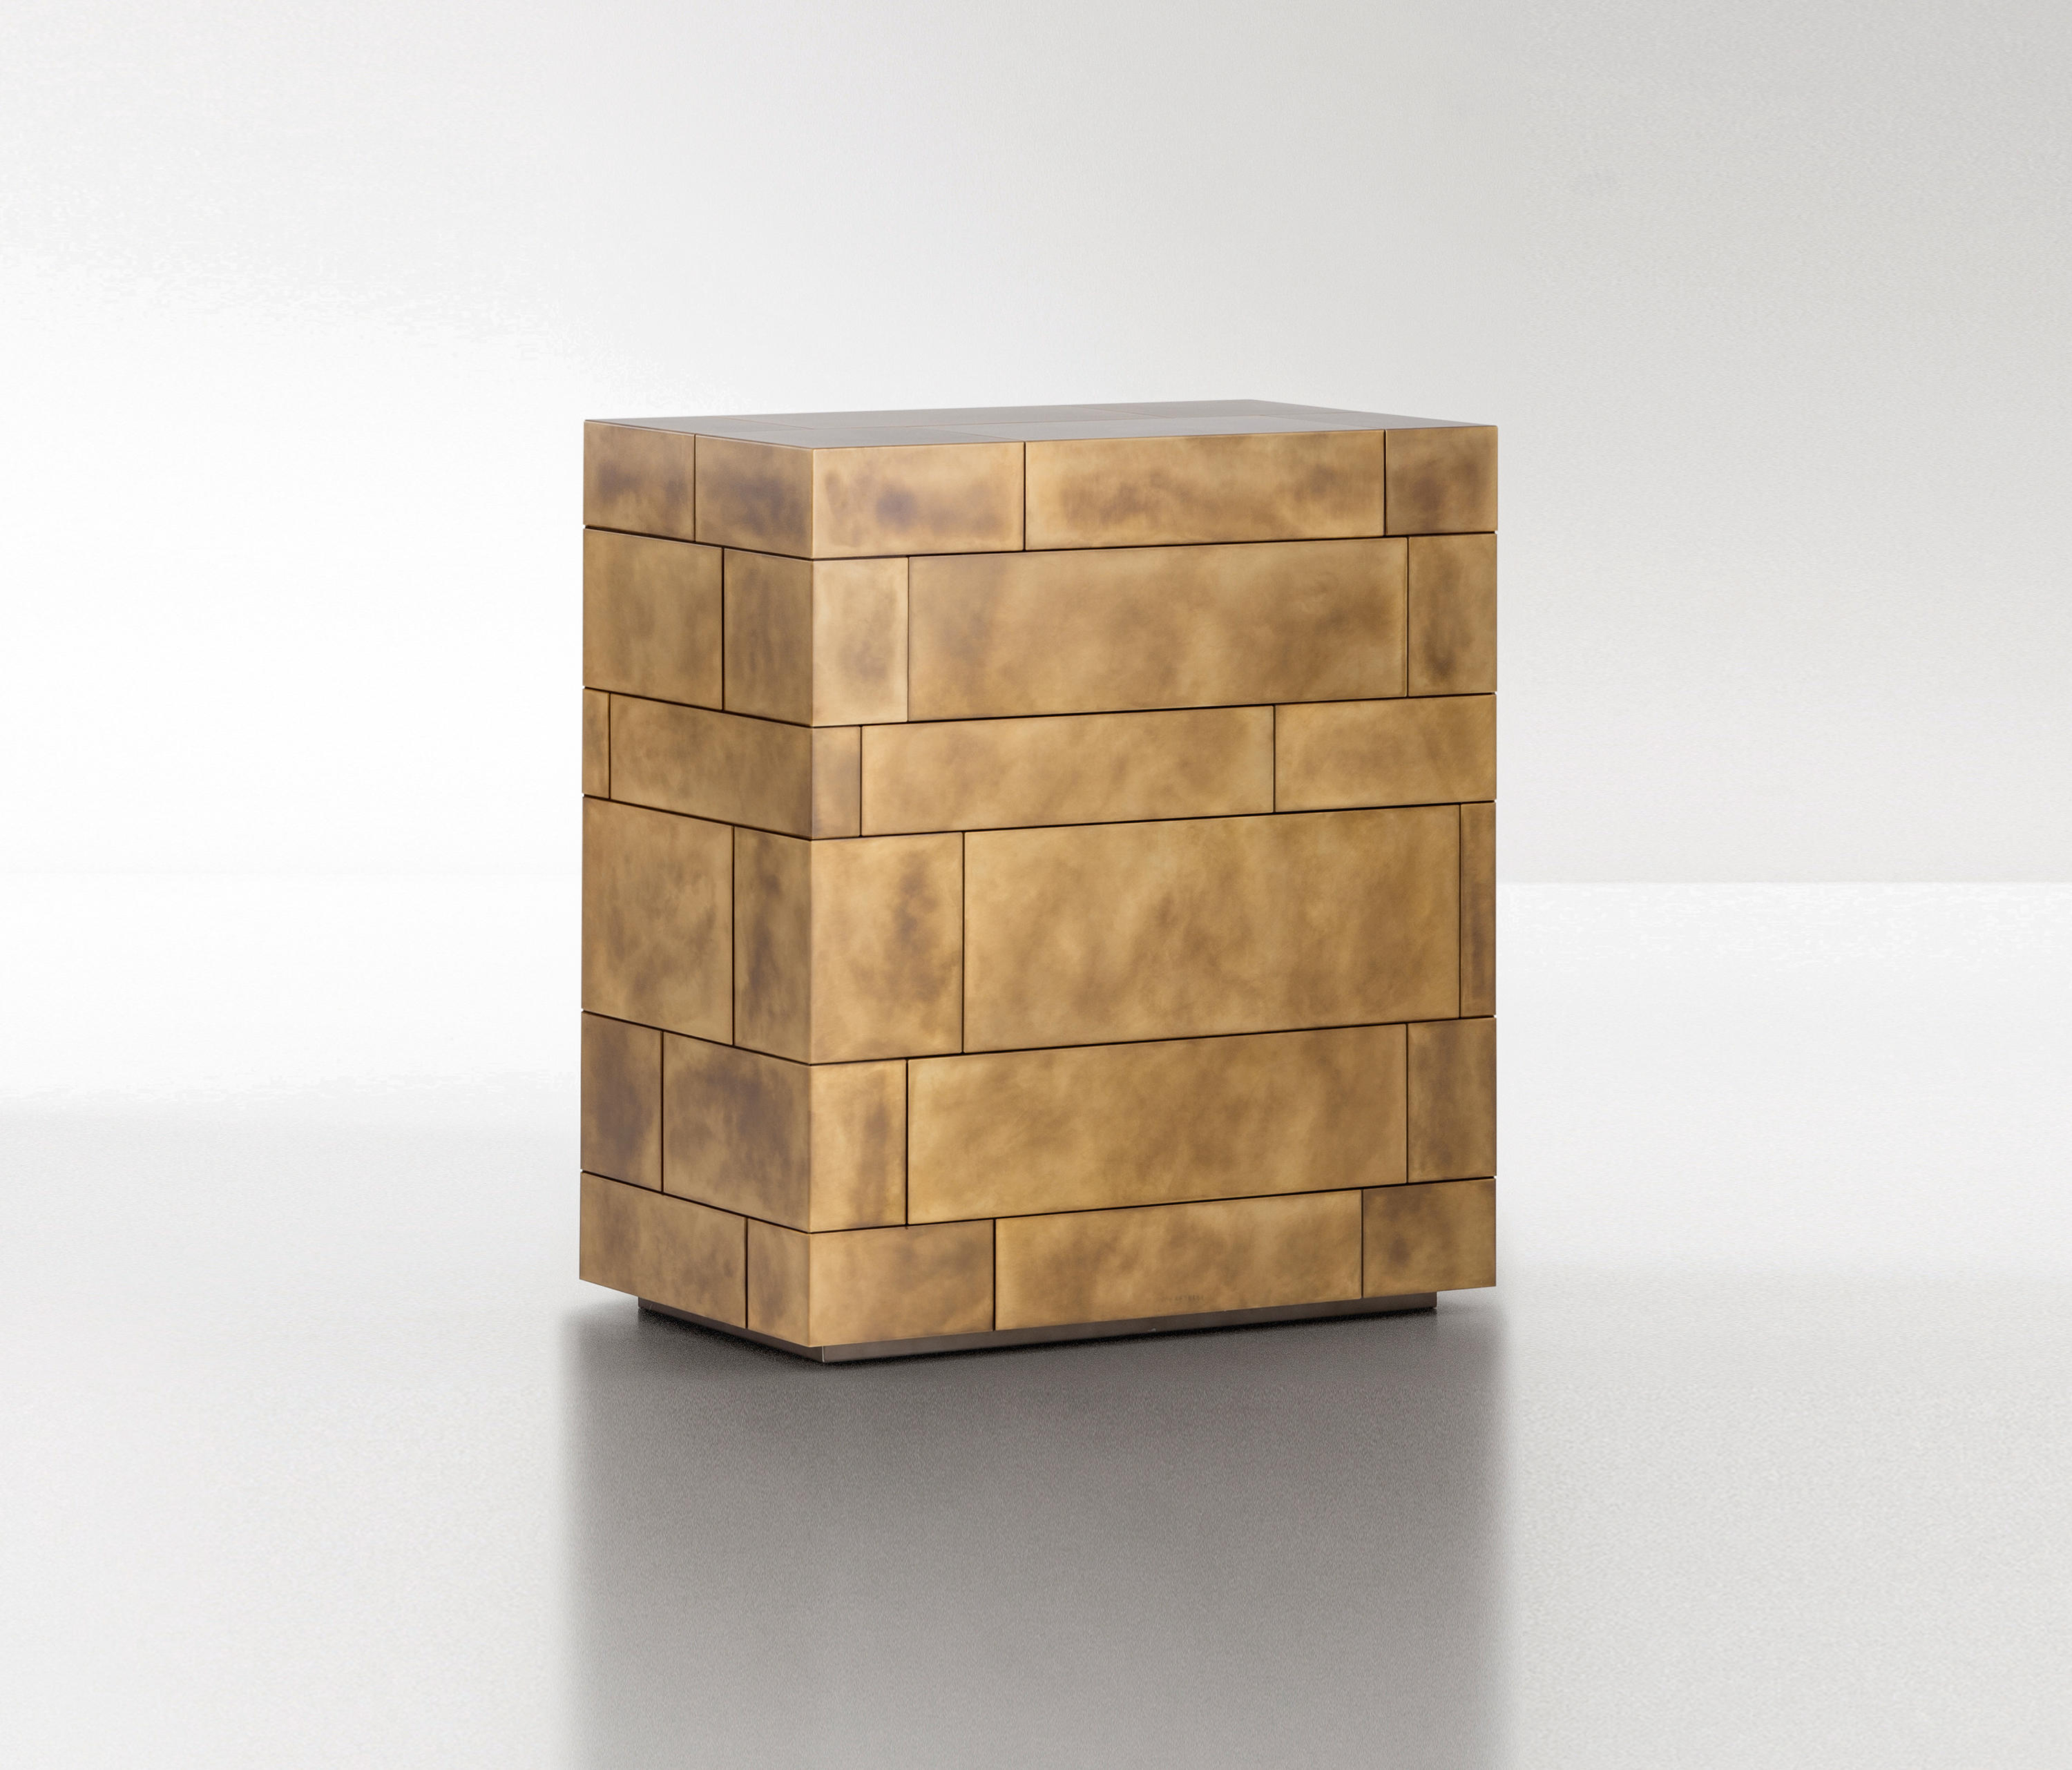 Celato 130 – Sideboards / Kommoden Von De Castelli | Architonic Pertaining To Most Popular Castelli Sideboards (#2 of 20)